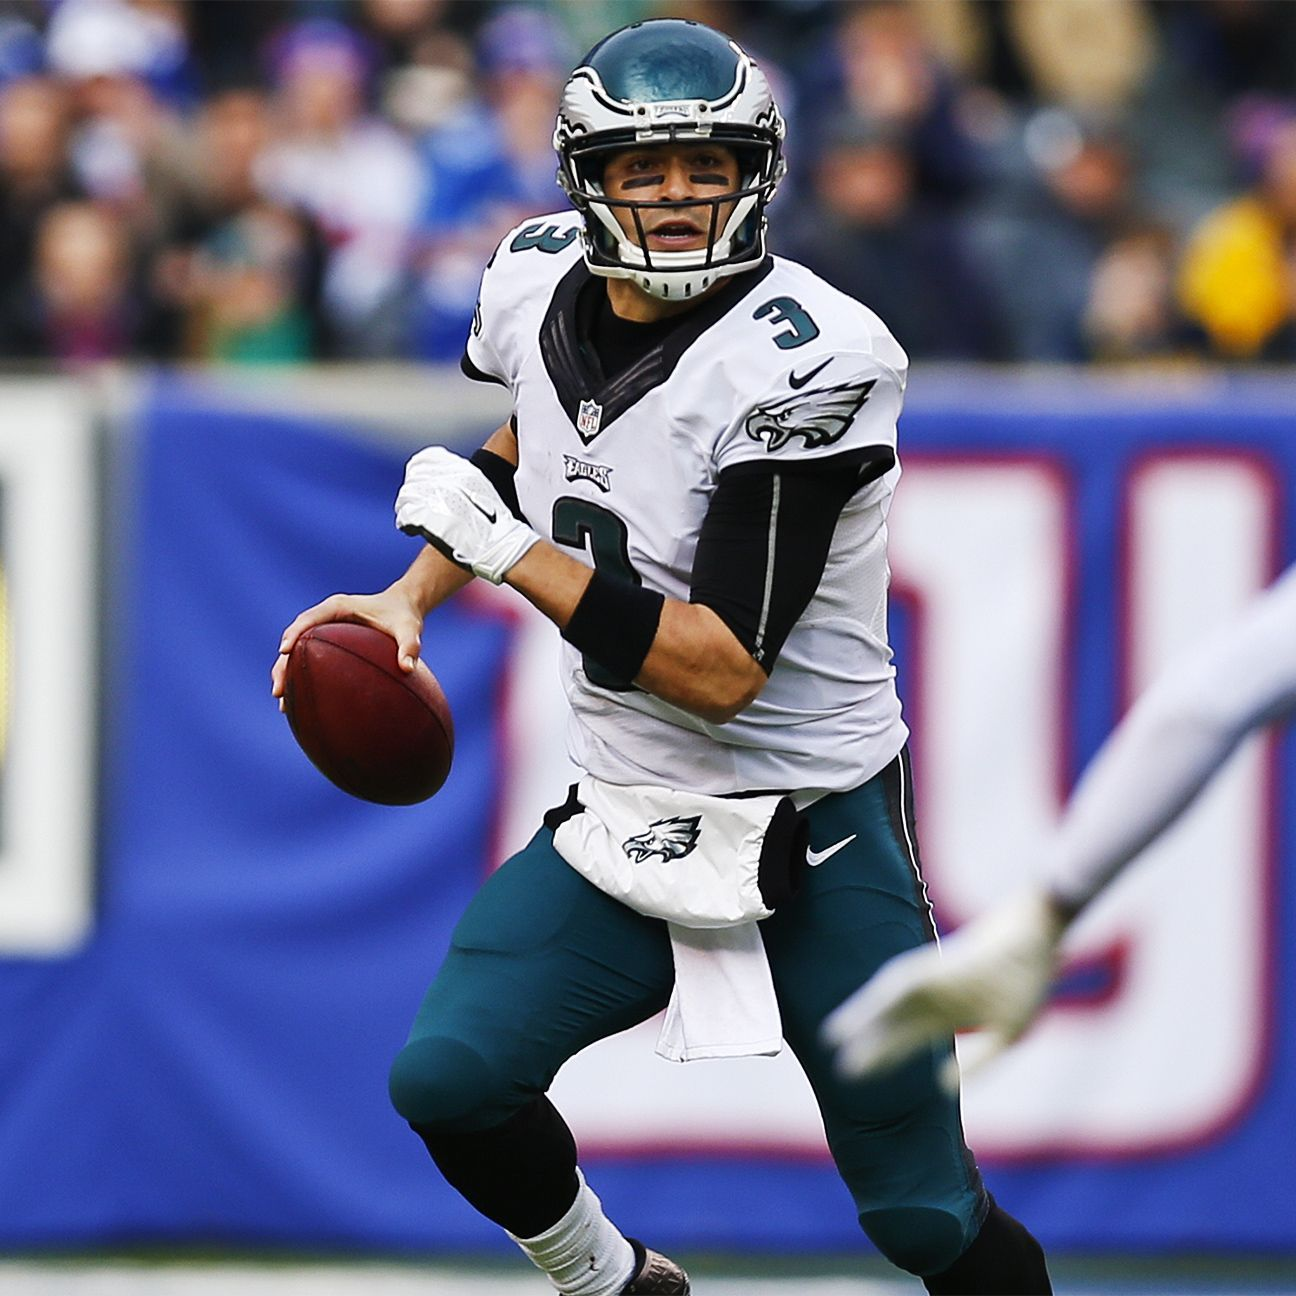 Chip Kelly improved Mark Sanchez, why not Tim Tebow? Tim Tebow  #TimTebow